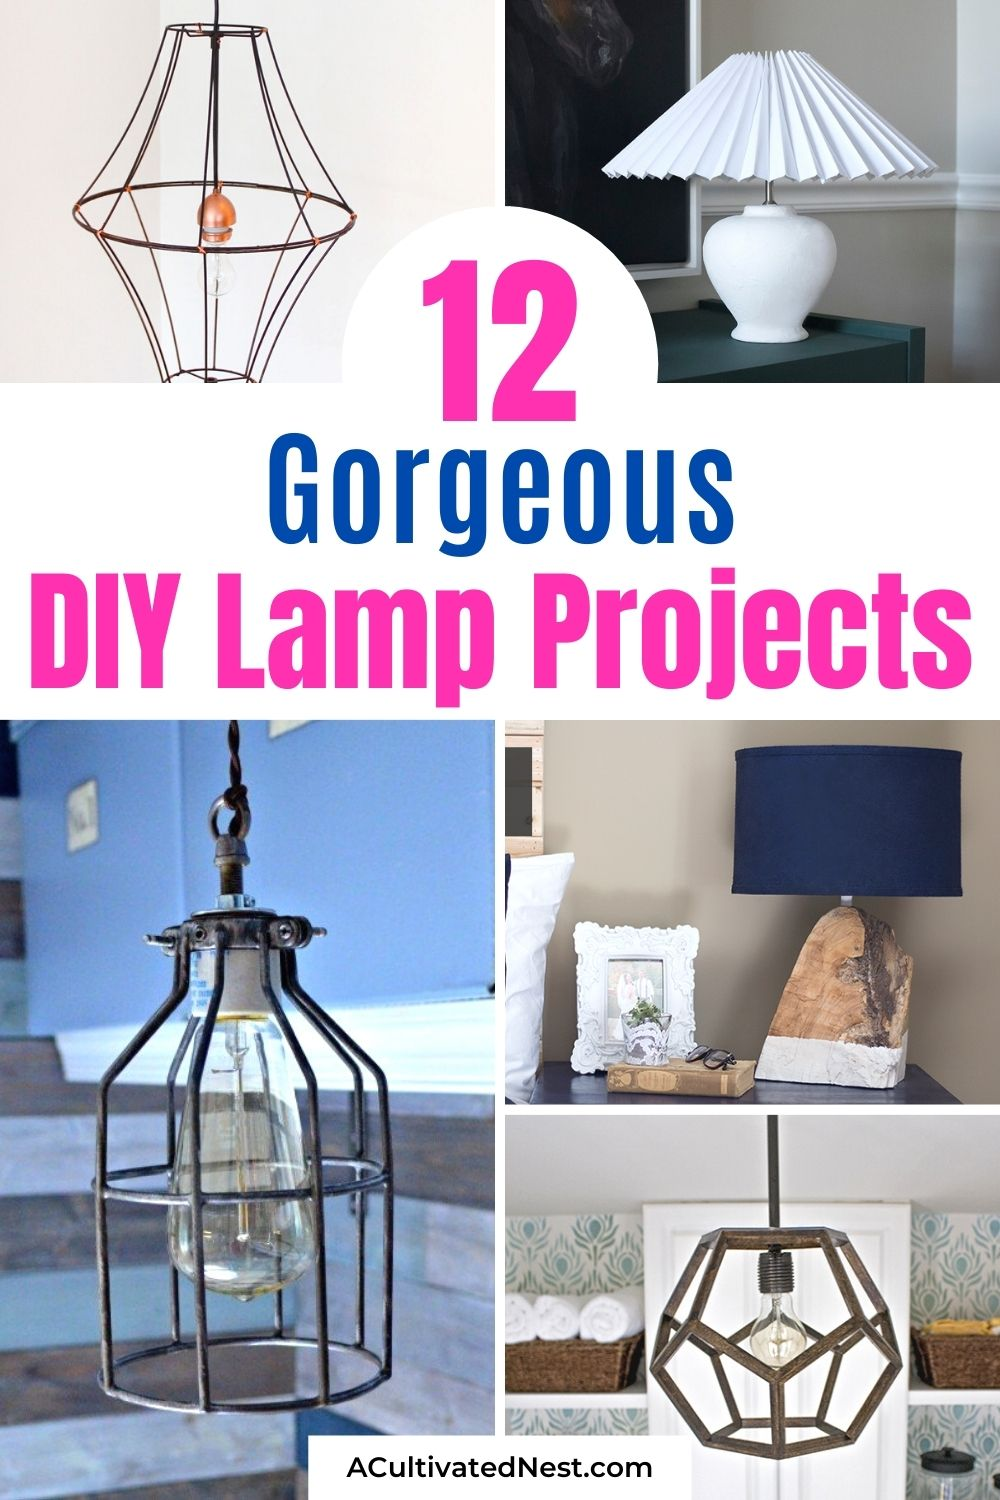 12 Creative DIY Lamp Projects- For an easy and frugal way to update your home's décor, you should make your own lamp! Take a look at these 12 DIY lamp projects for inspiration! | #diyProject #DIY #homeDecor #diyDecor #ACultivatedNest